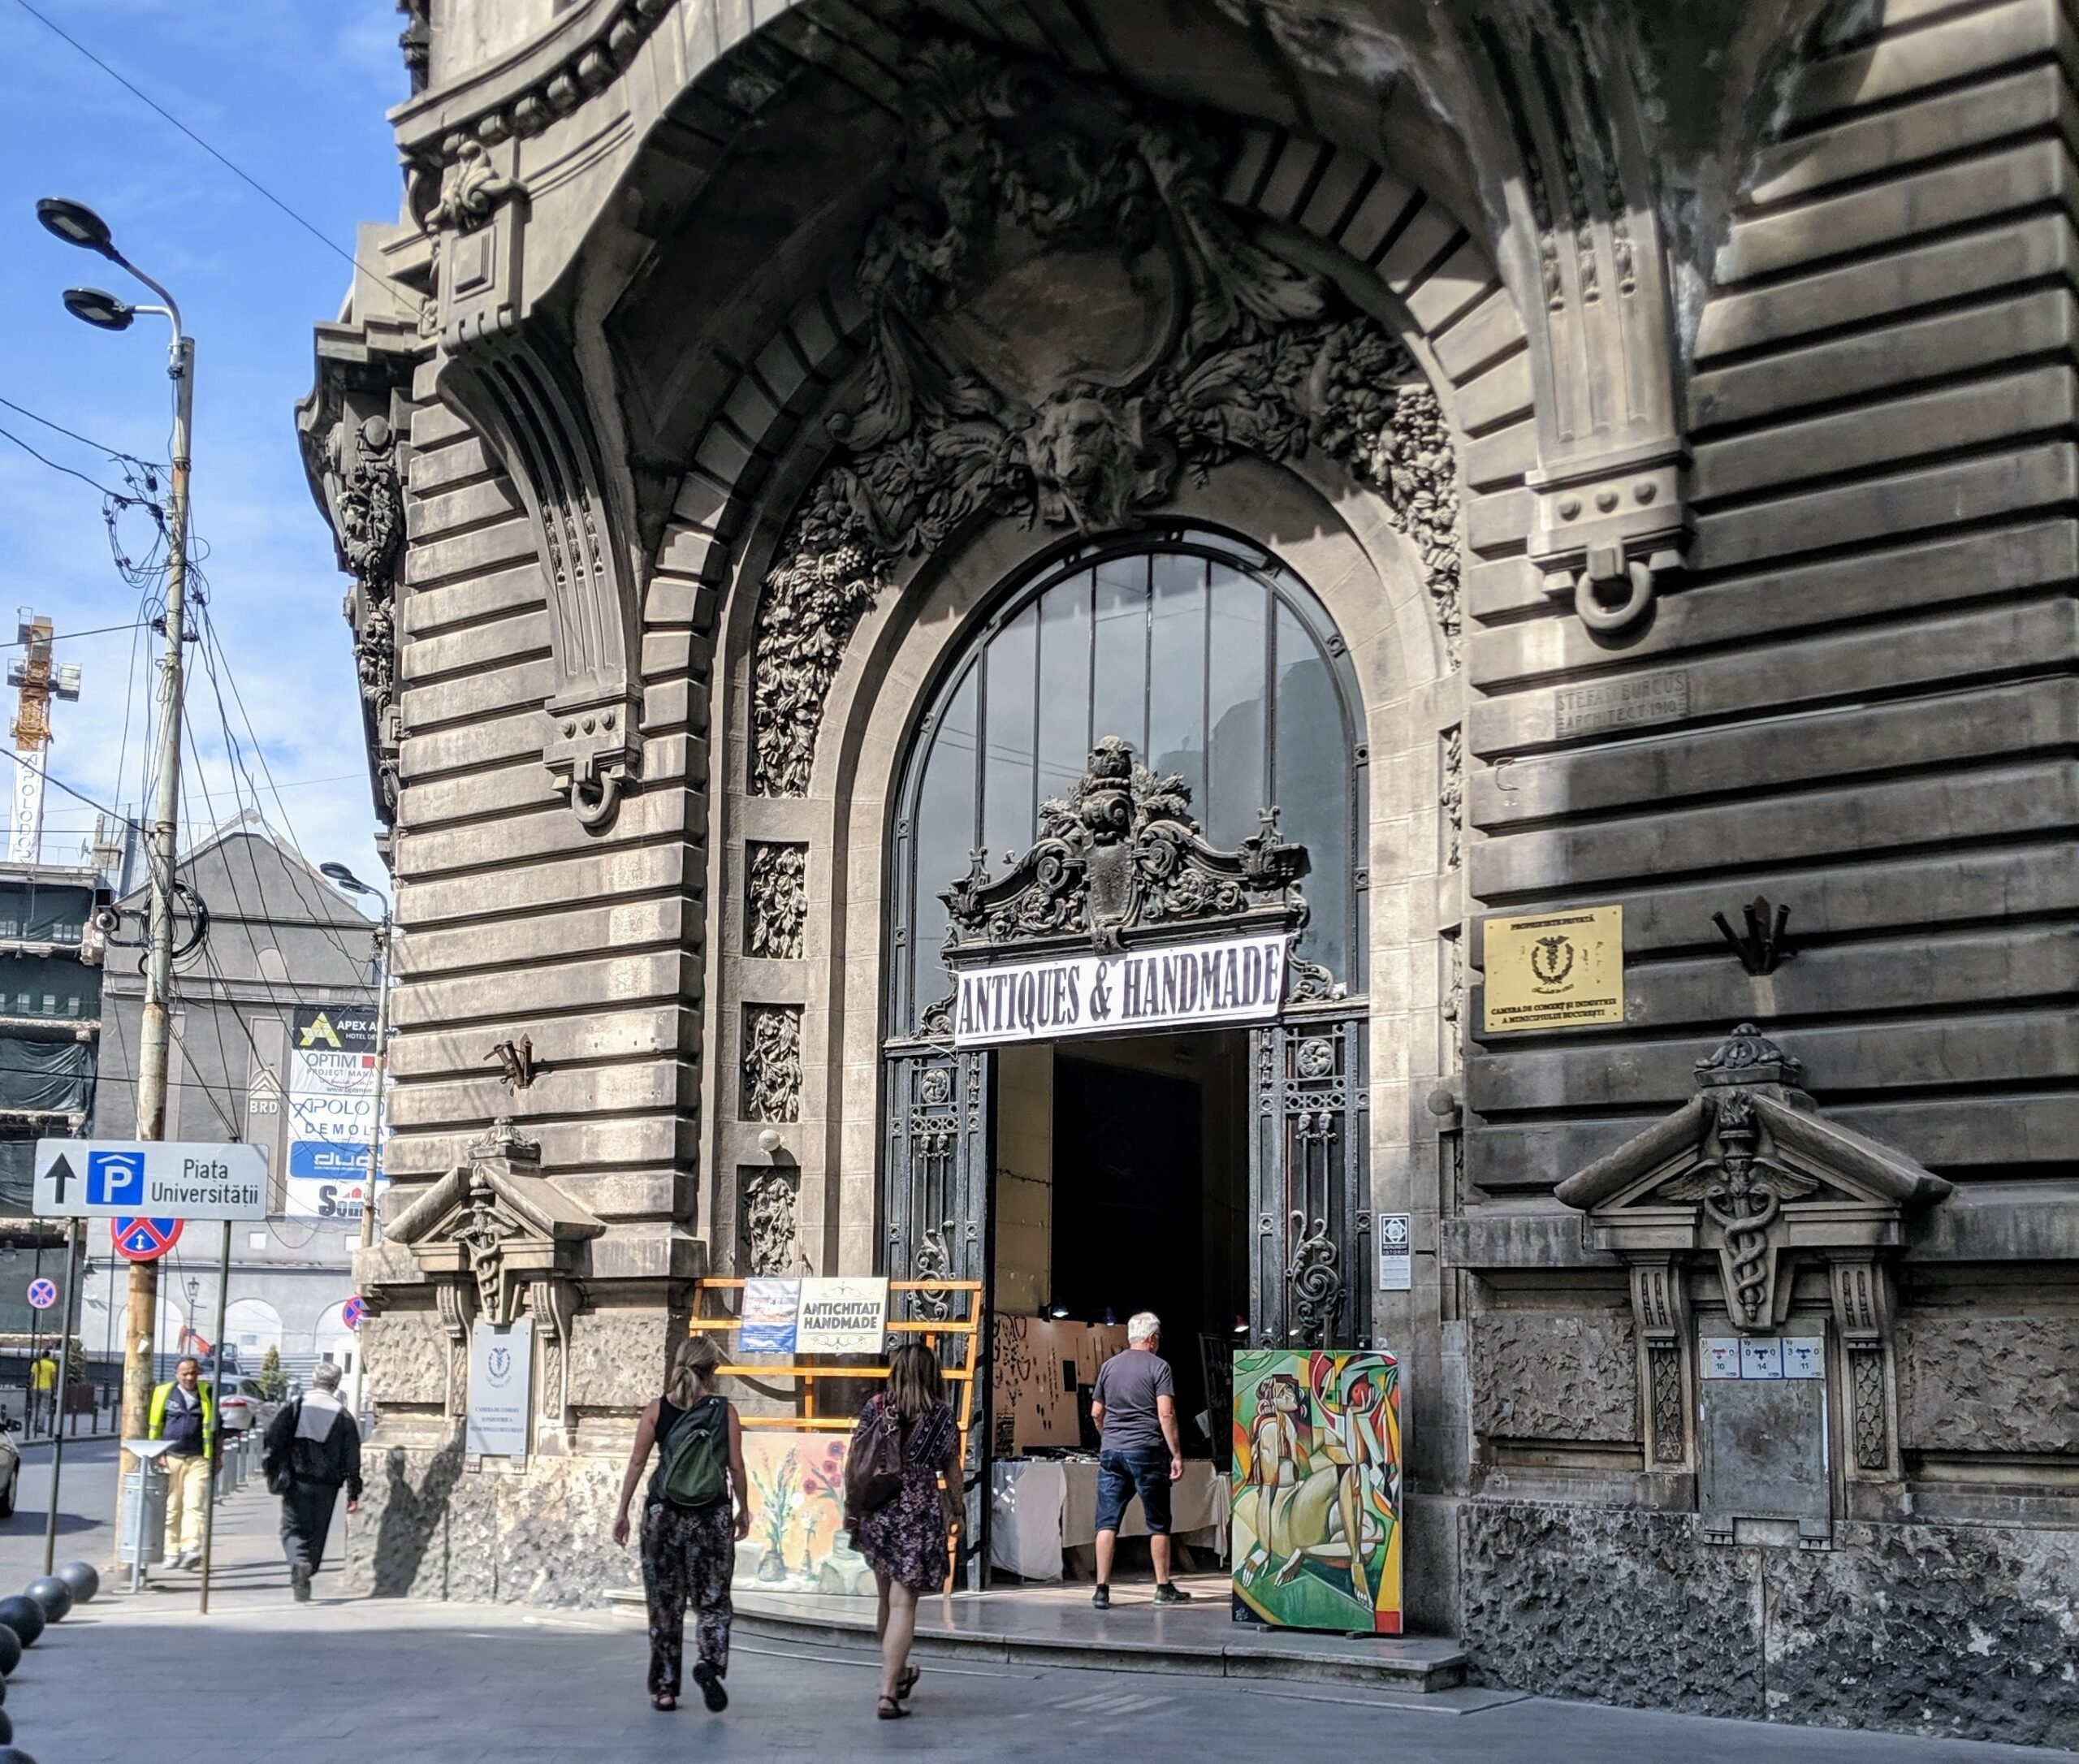 People walking into an old building with a sign that says antiques and handmade, where the purchase of handmade goods can be part of sustainable travel.